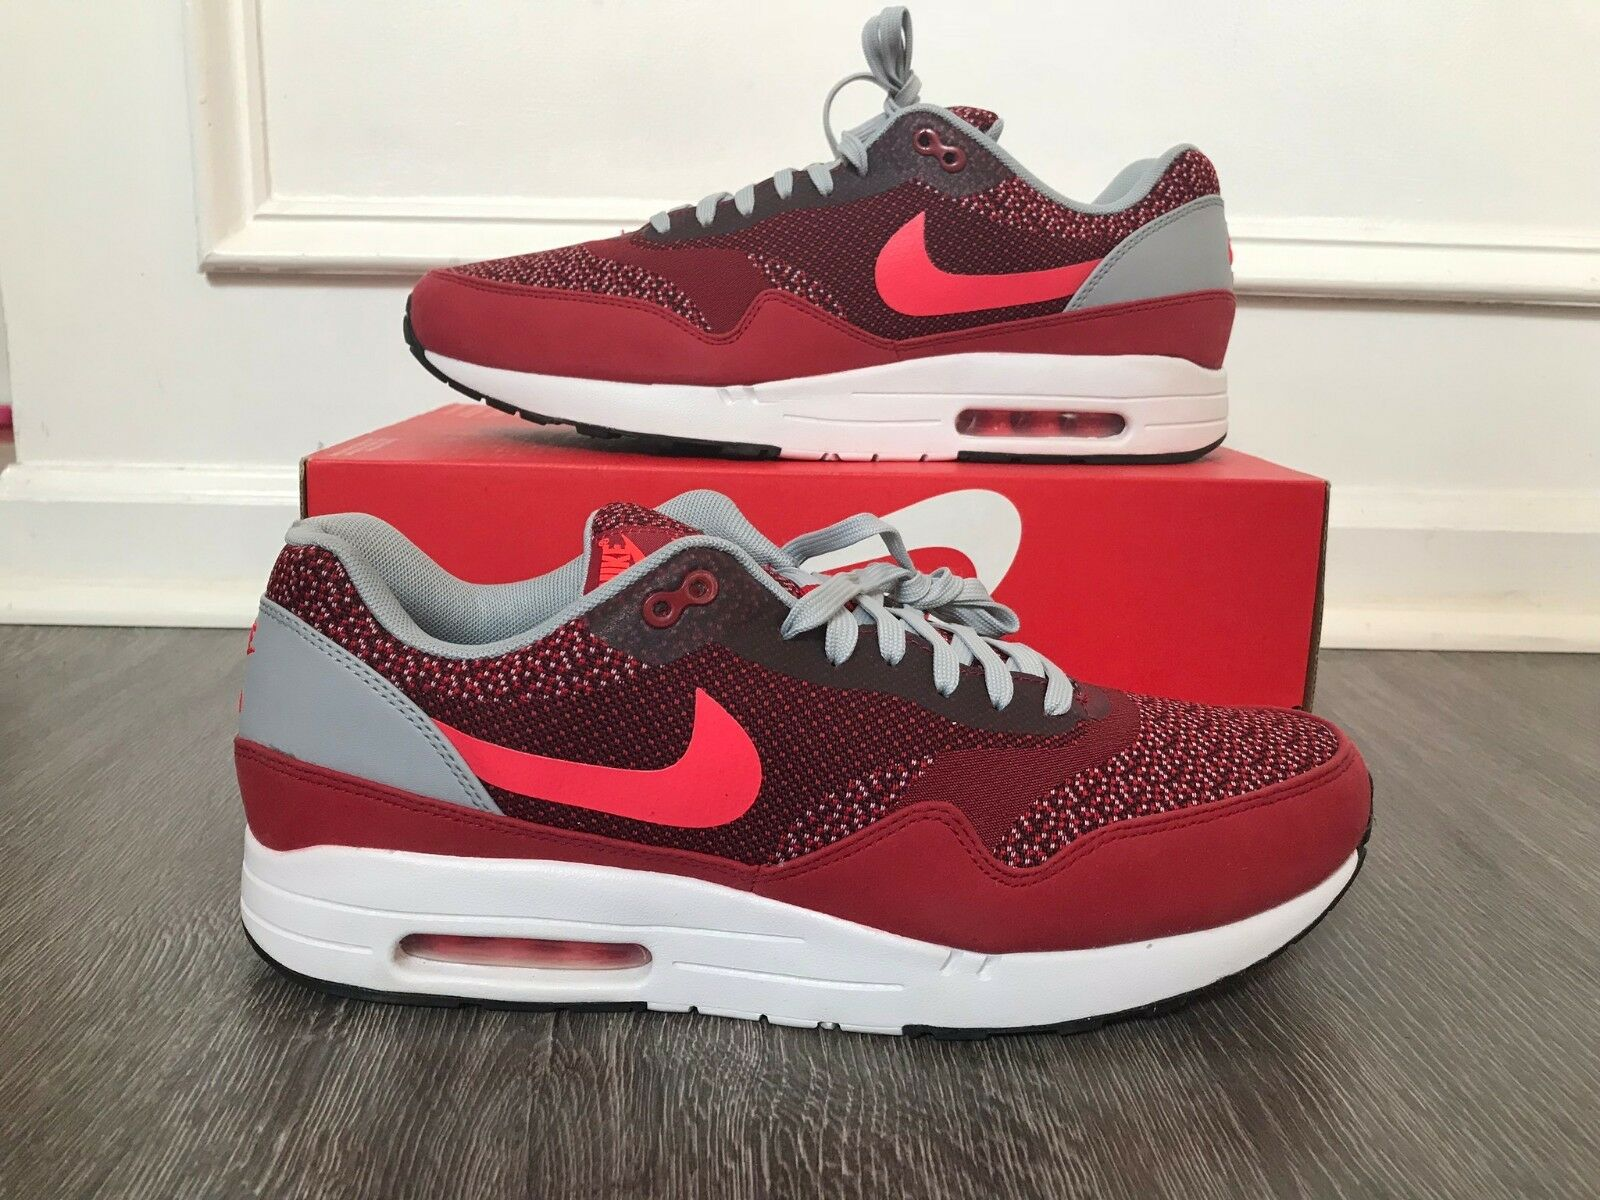 newest collection 413bf c2b40 ... usa nike air max 1 jcrd jacquard studio rot 600 laser größe 644153 600  rot neue